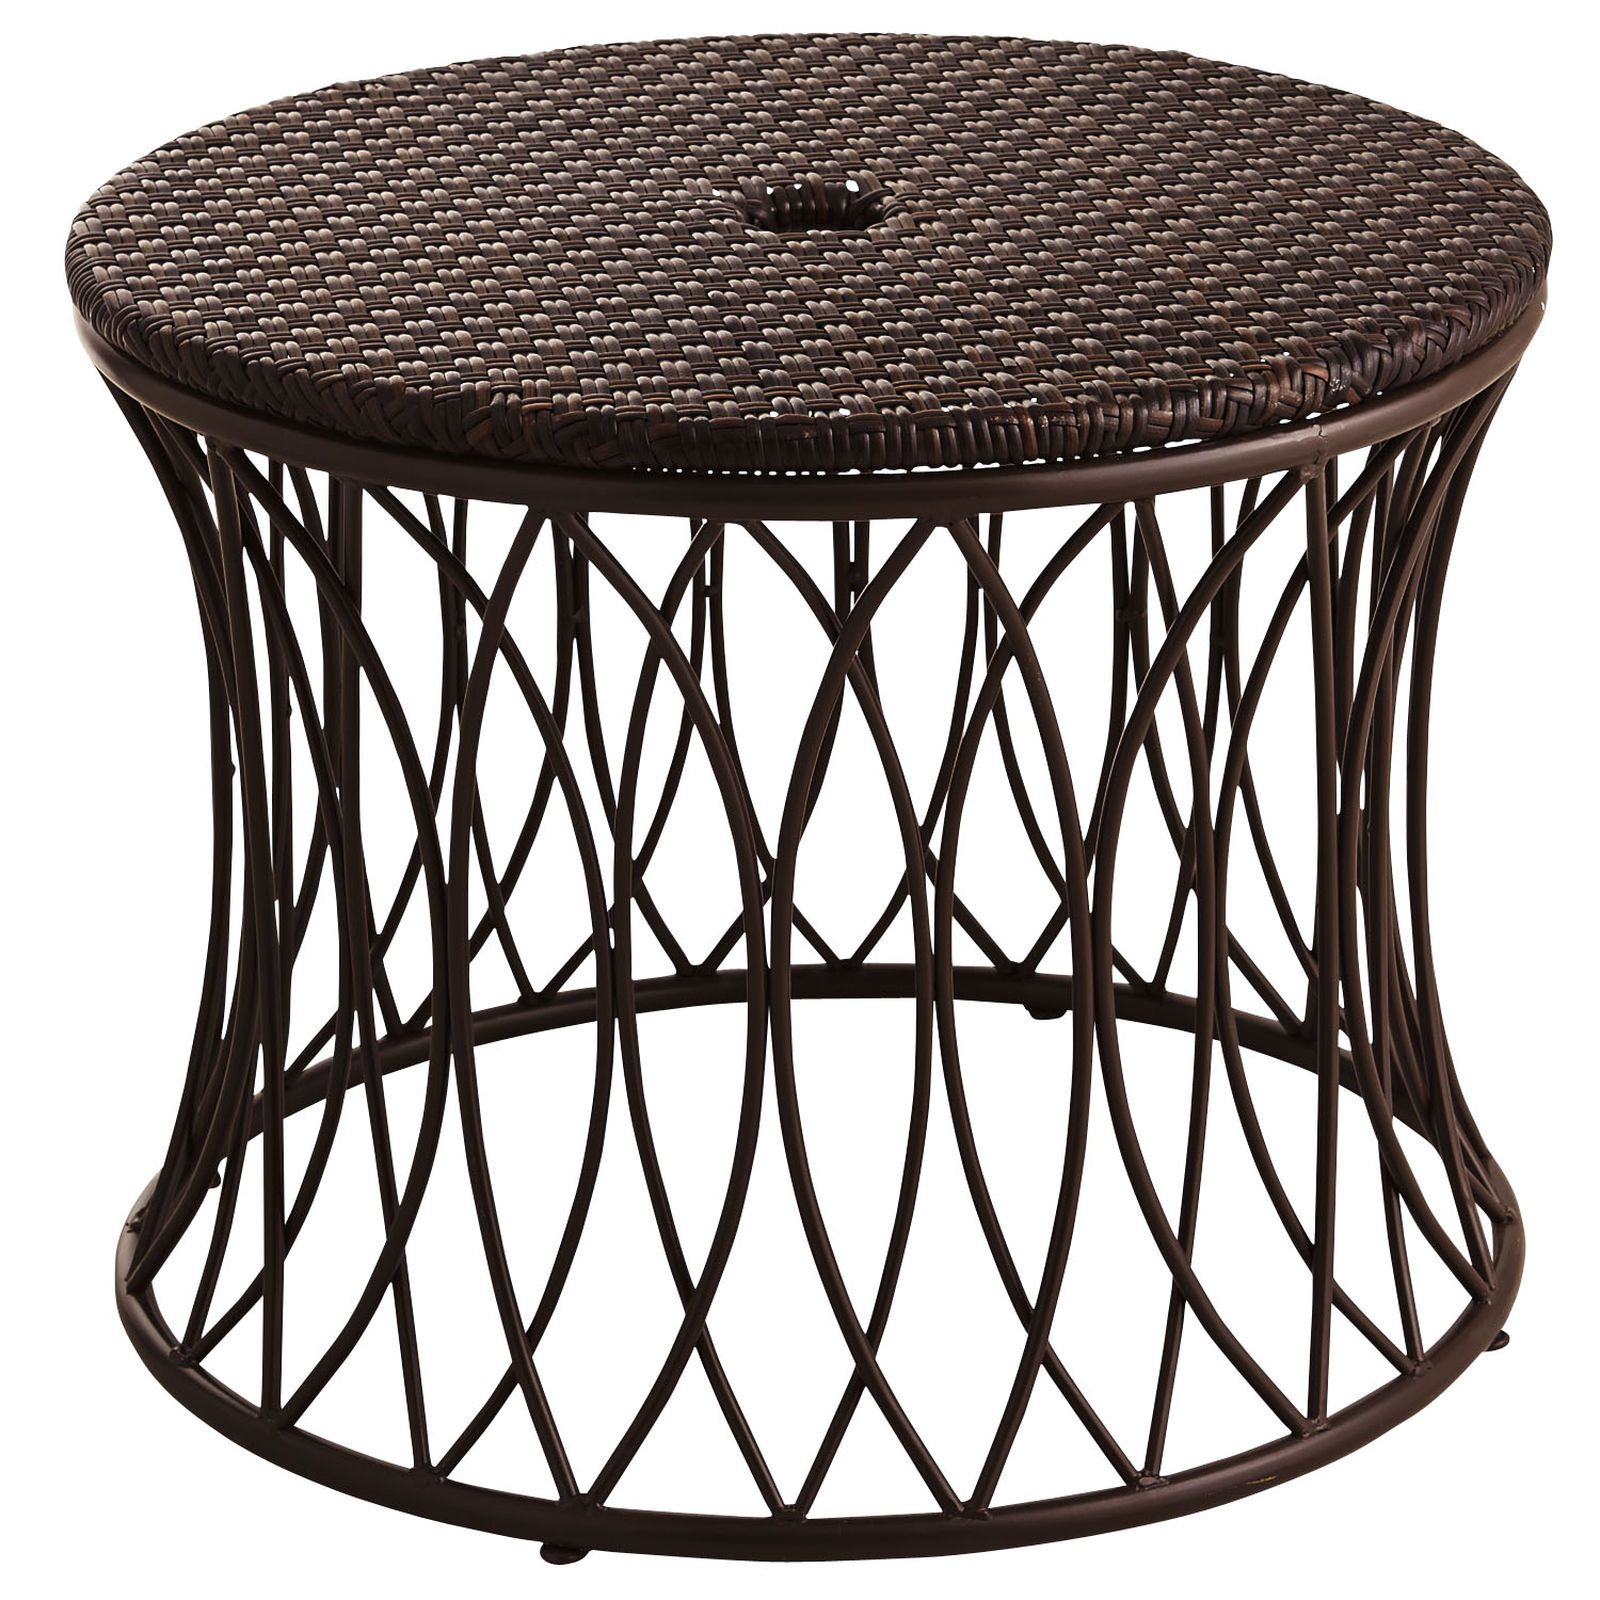 This Decorative Low Table Provides Extra Stability And Style For Your Patio Umbrella Simply Place Outdoor Umbrella Table Patio Umbrella Stand Outdoor Umbrella